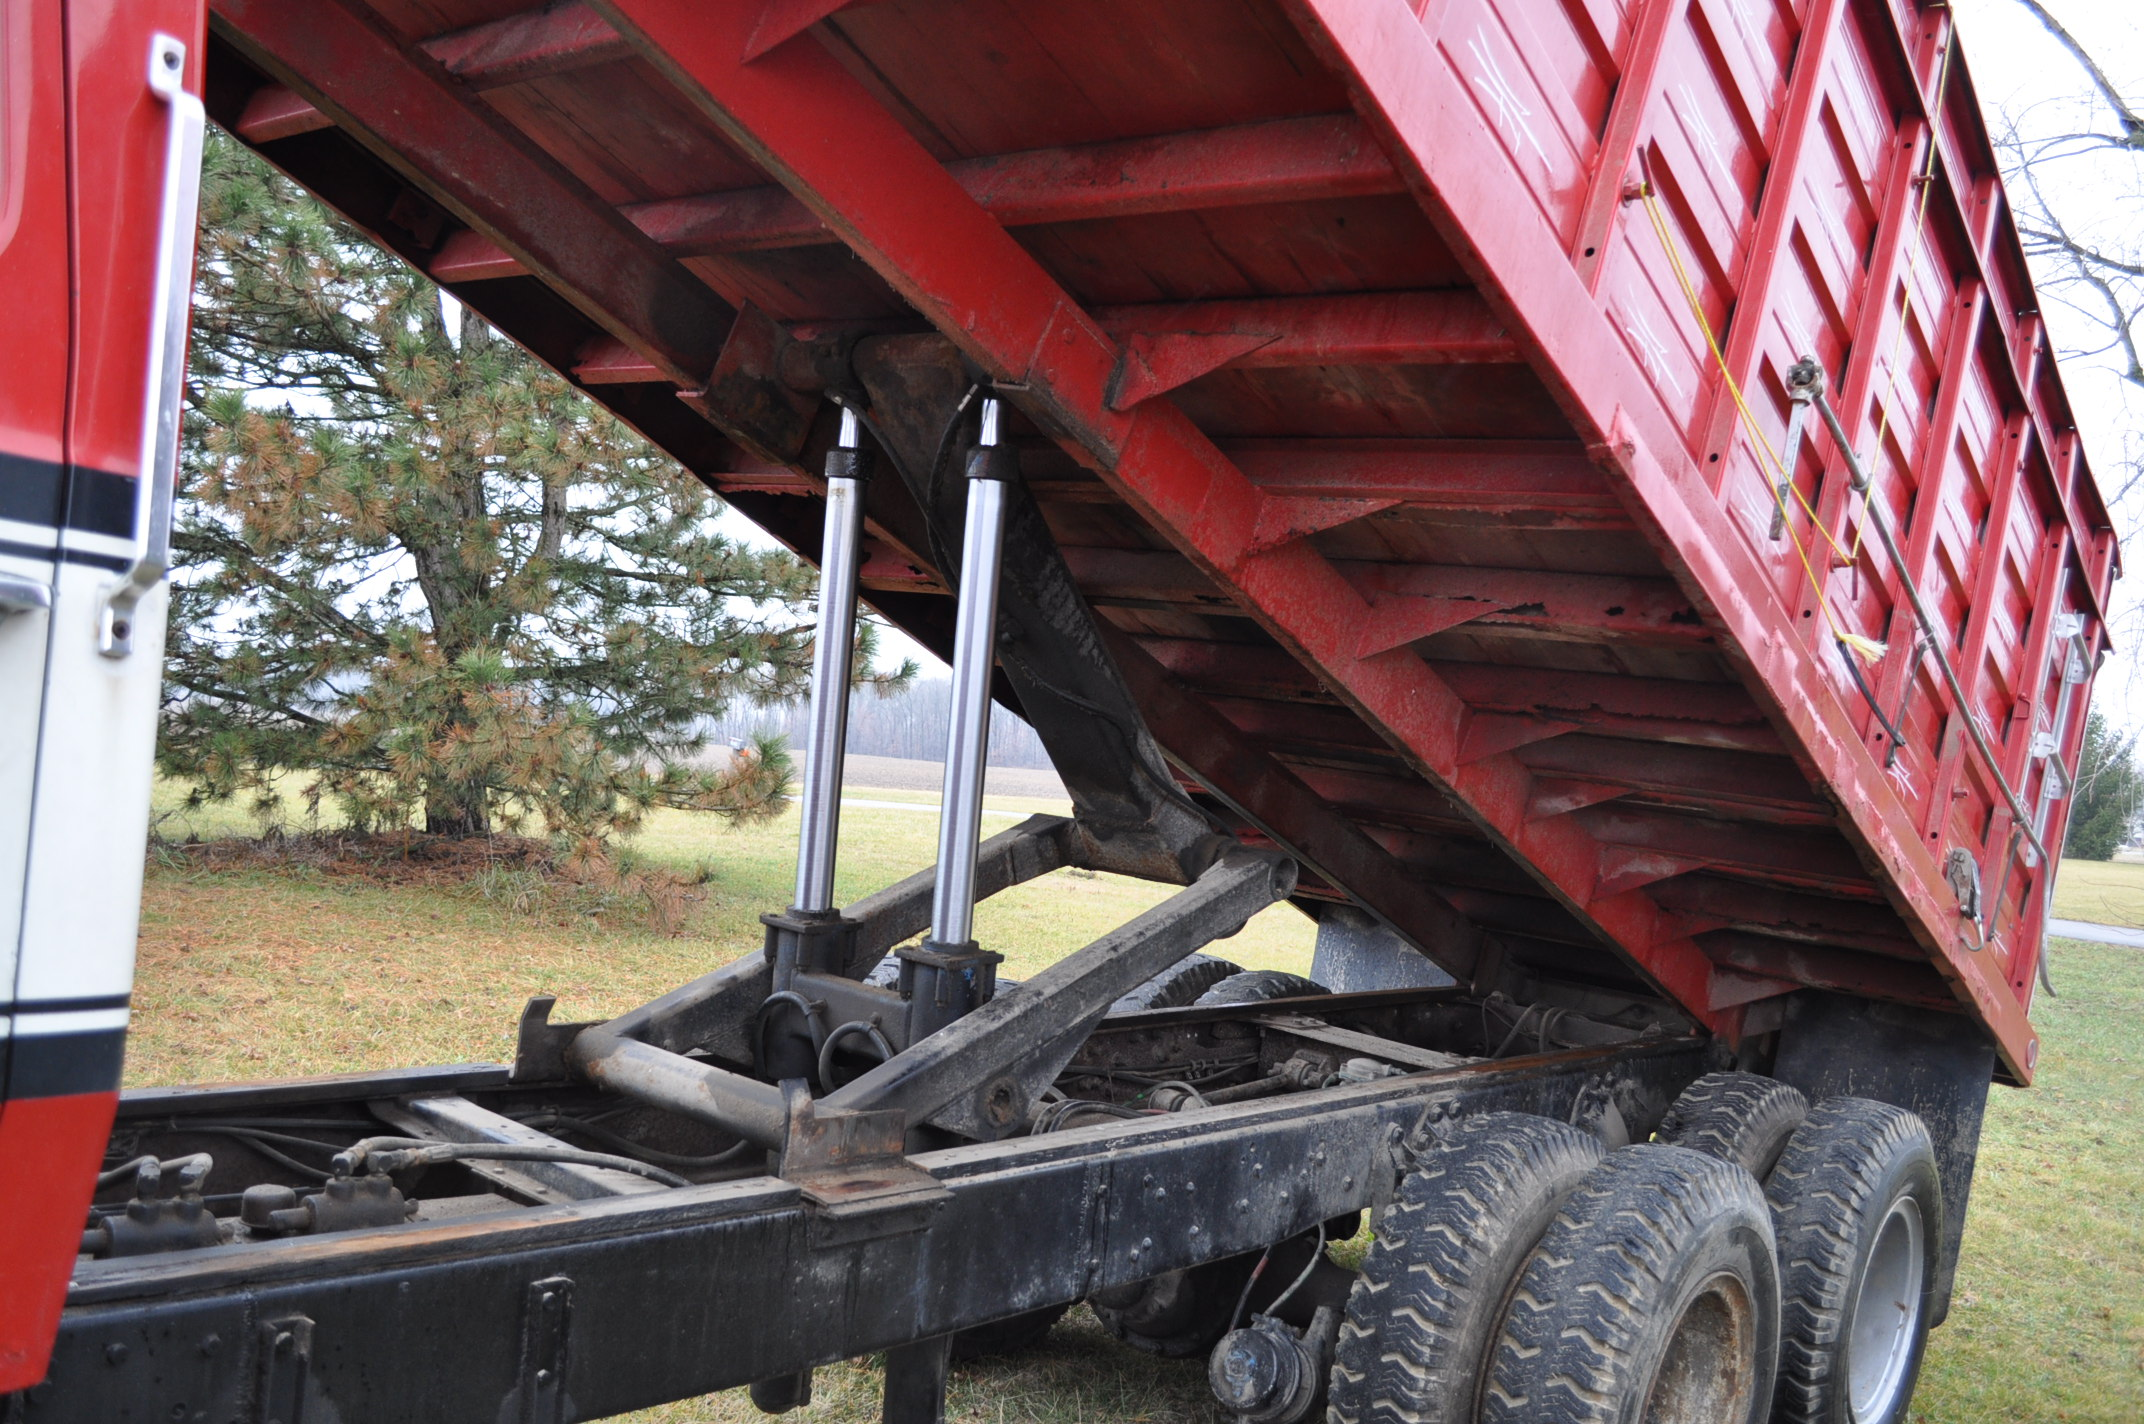 1974 Ford 900 grain truck, tandem axle, gas V-8, 5 + 2, 10.00-20 tires, 18' wood floor, pto, - Image 12 of 26